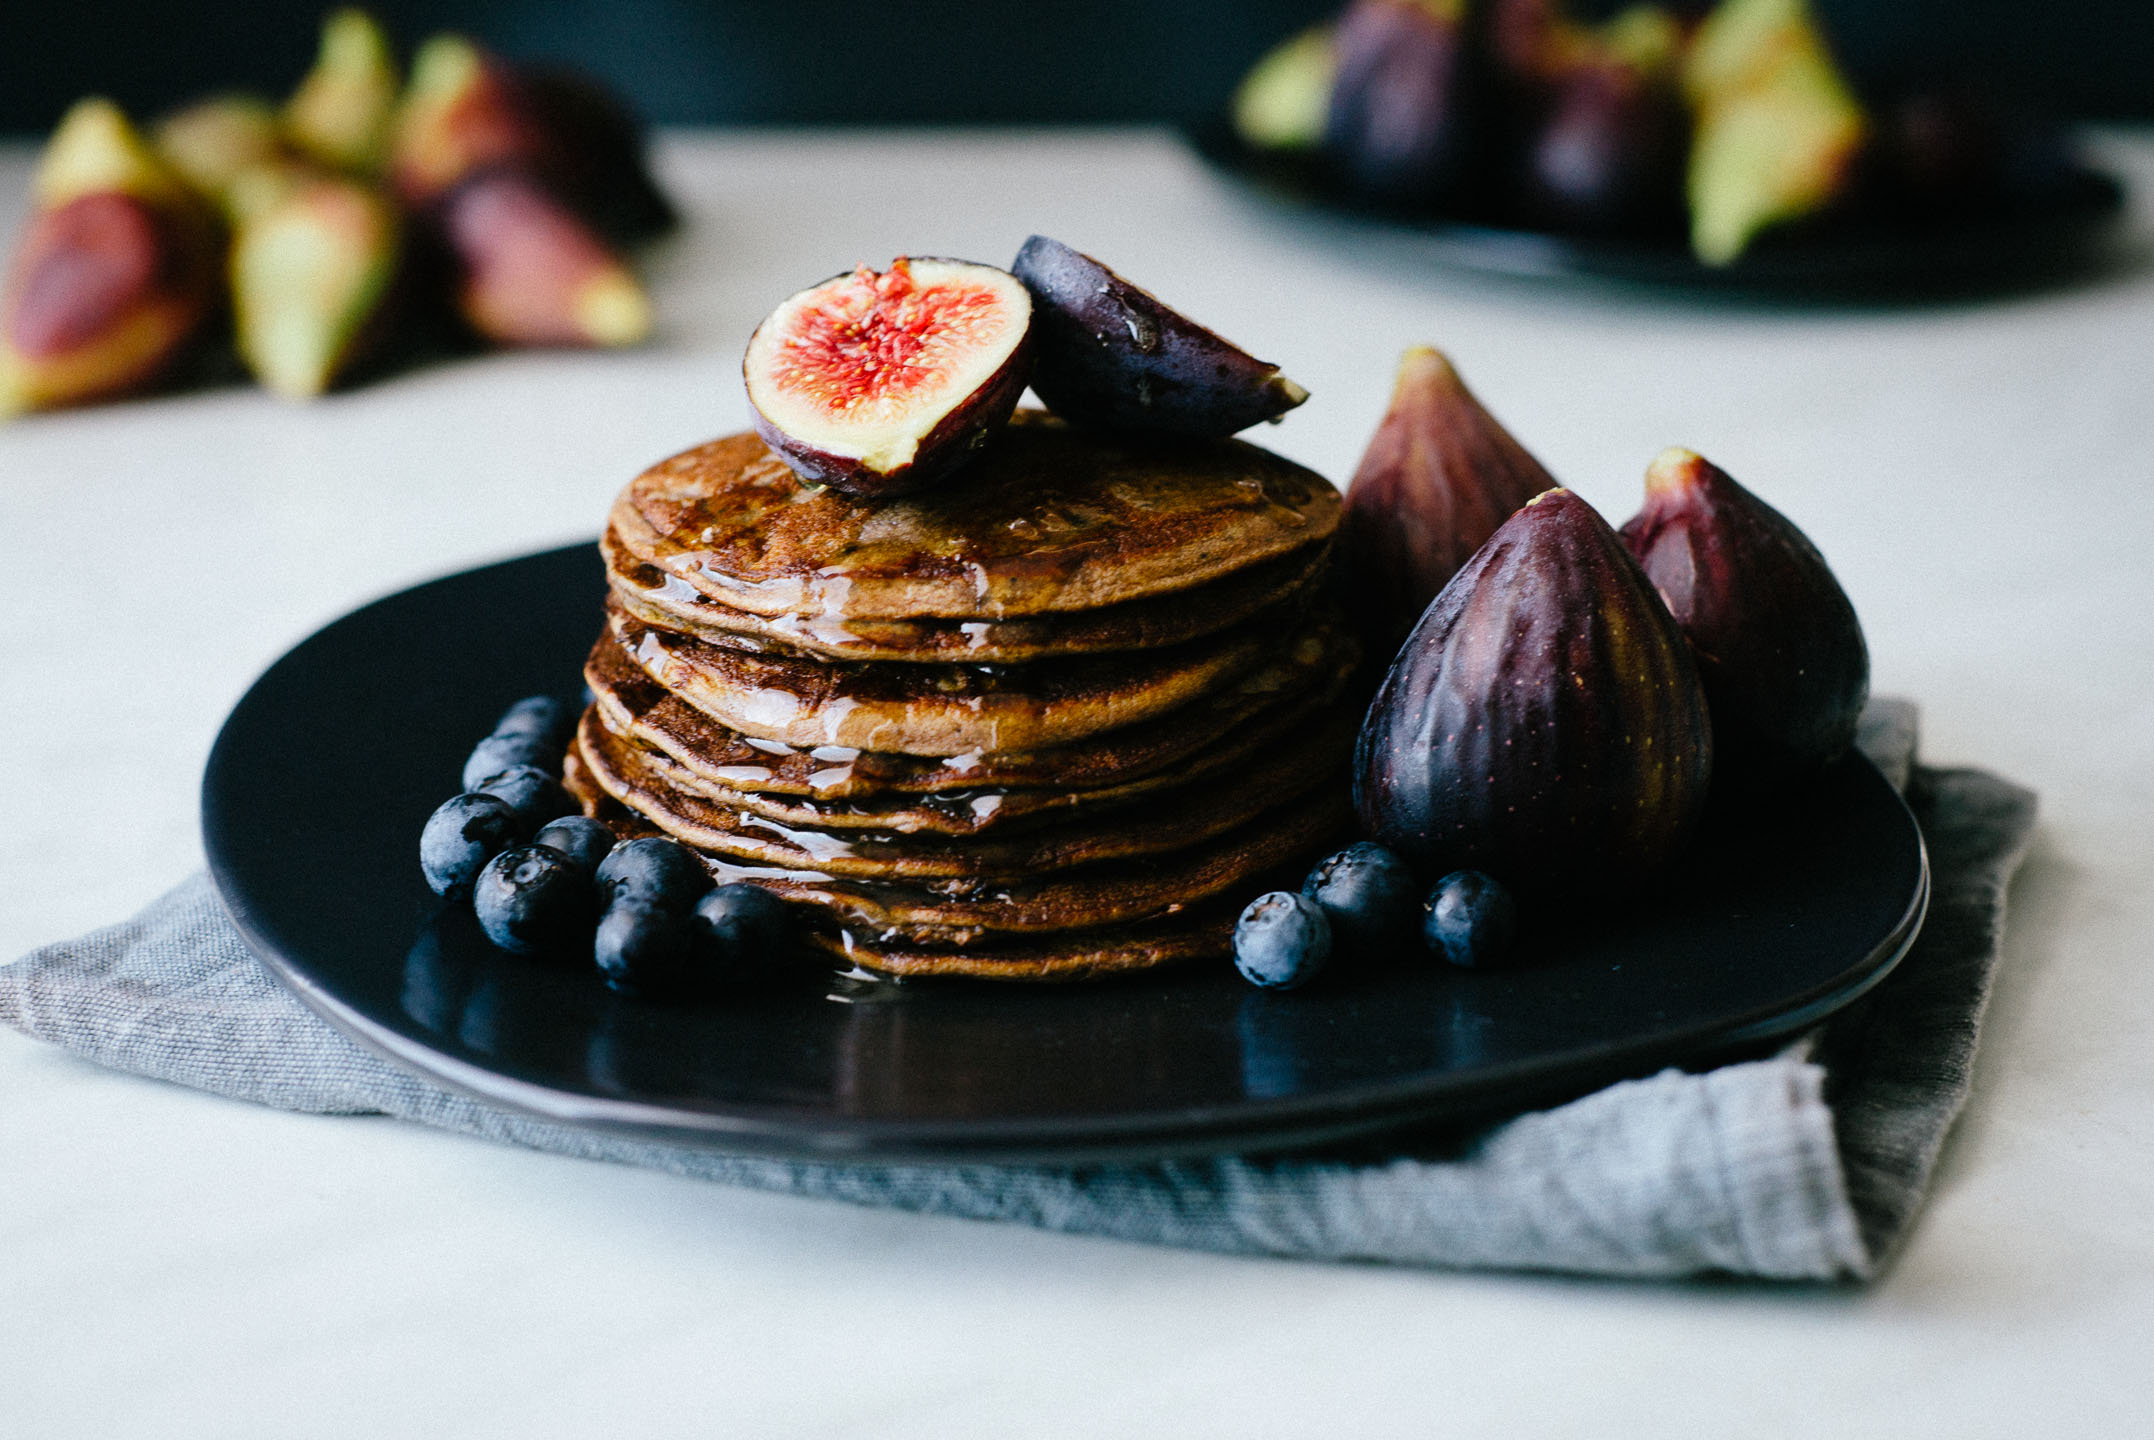 Chocolate_Banana_Pancakes_Christina_Soong-4